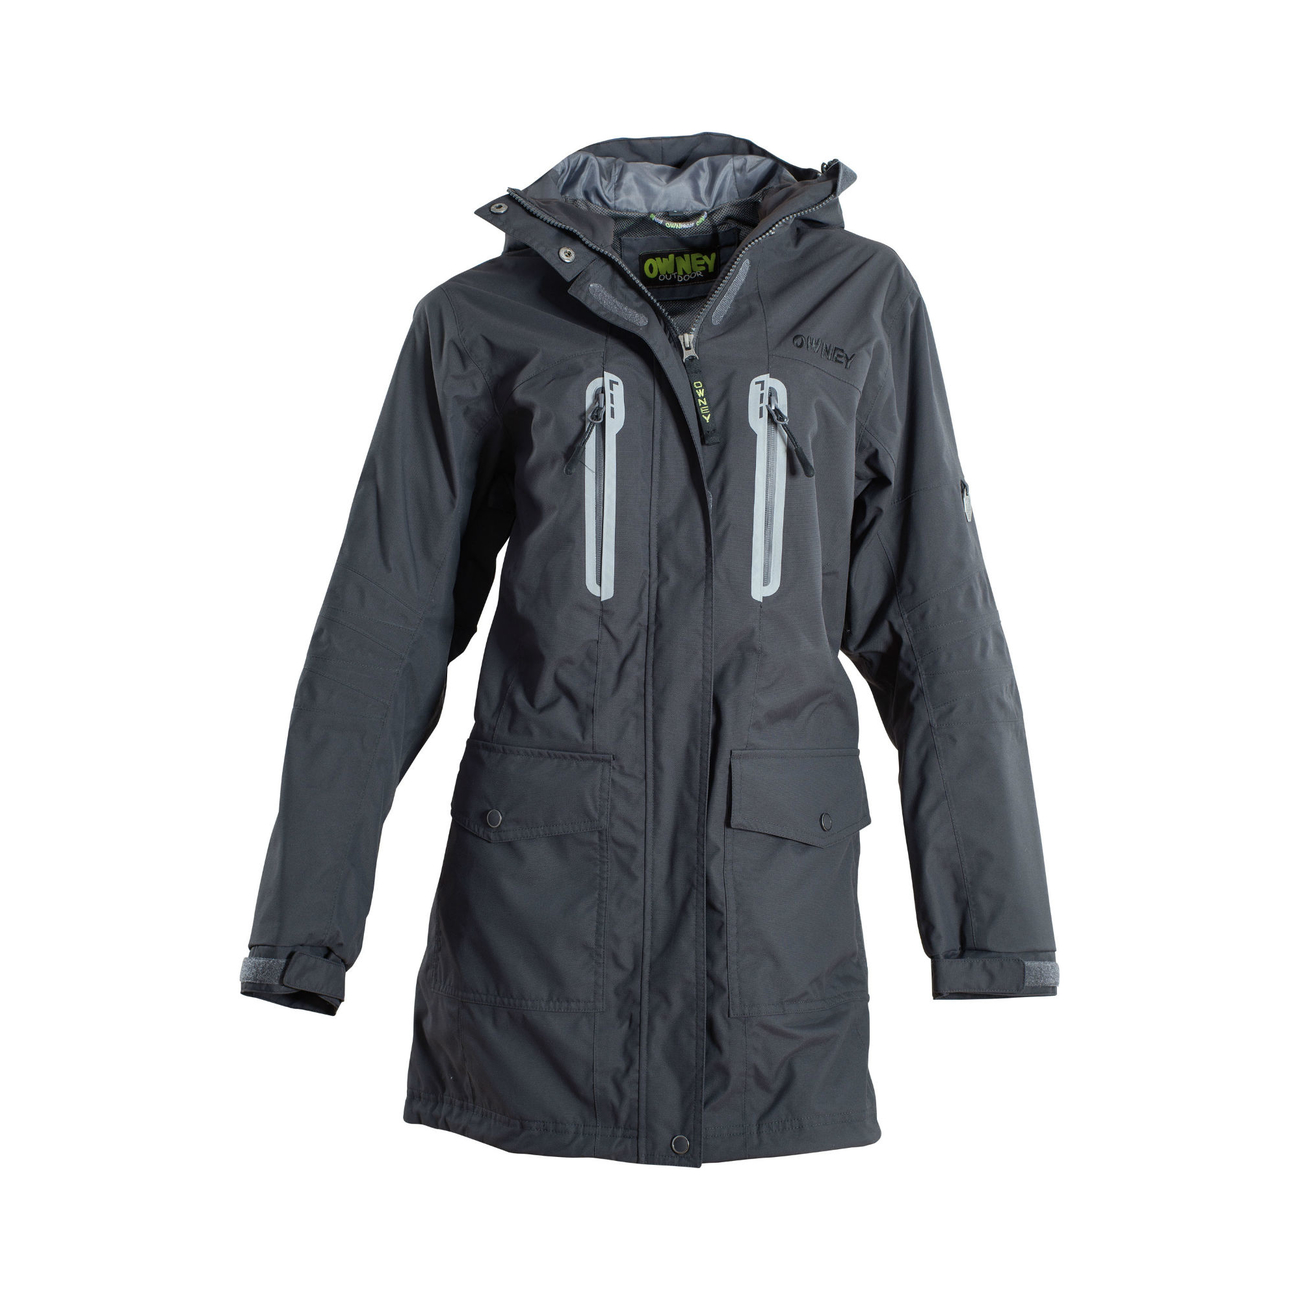 Owney Outdoor Damenparka Arnauti, Bild 6